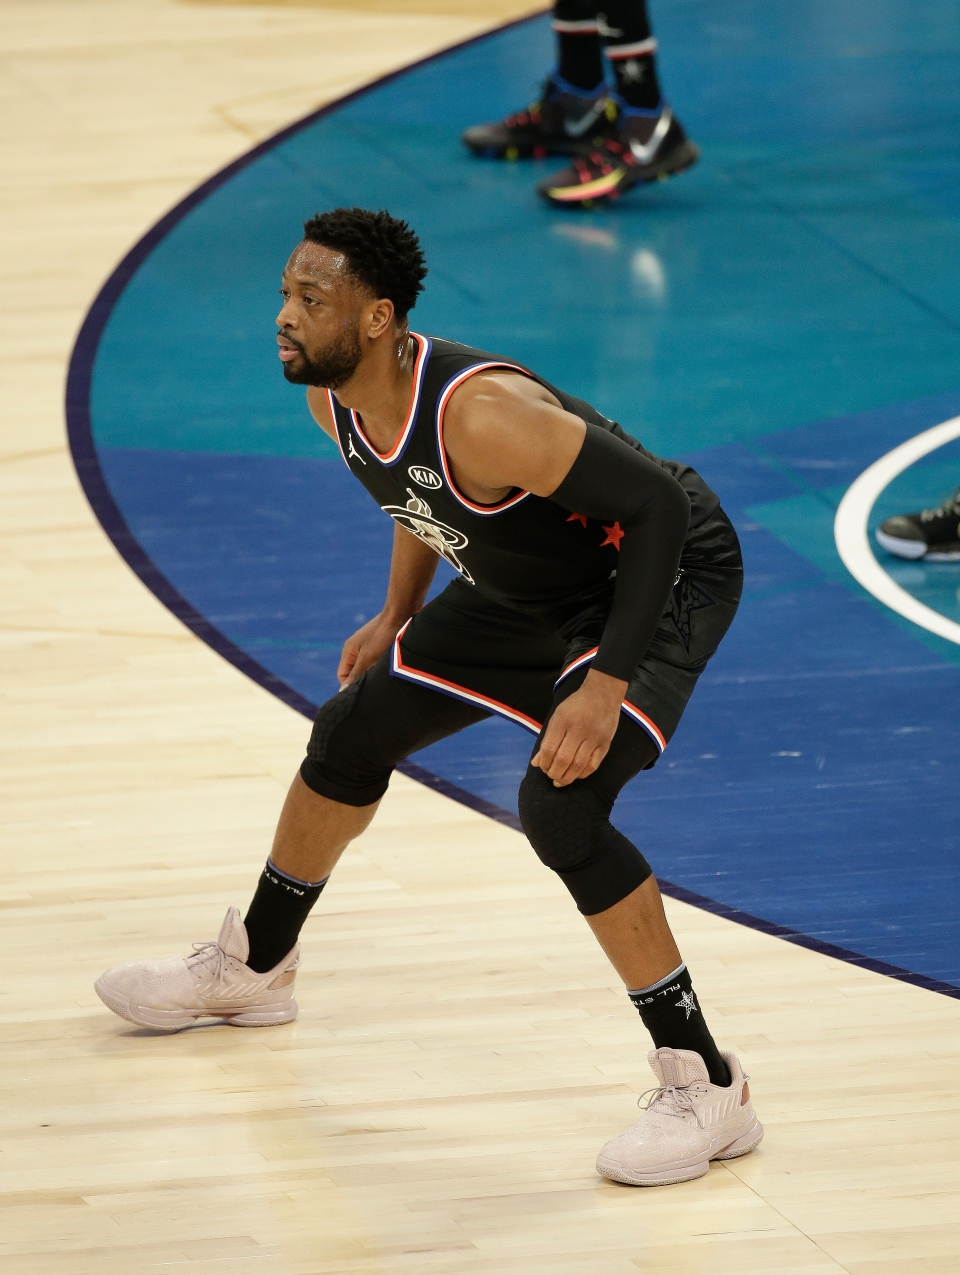 Team LeBron's Dwayne Wade, of the Miami Heat, works against Team Giannis during the second half of an NBA All-Star basketball game, Sunday, Feb. 17, 2019, in Charlotte, N.C. (AP Photo/Gerry Broome)